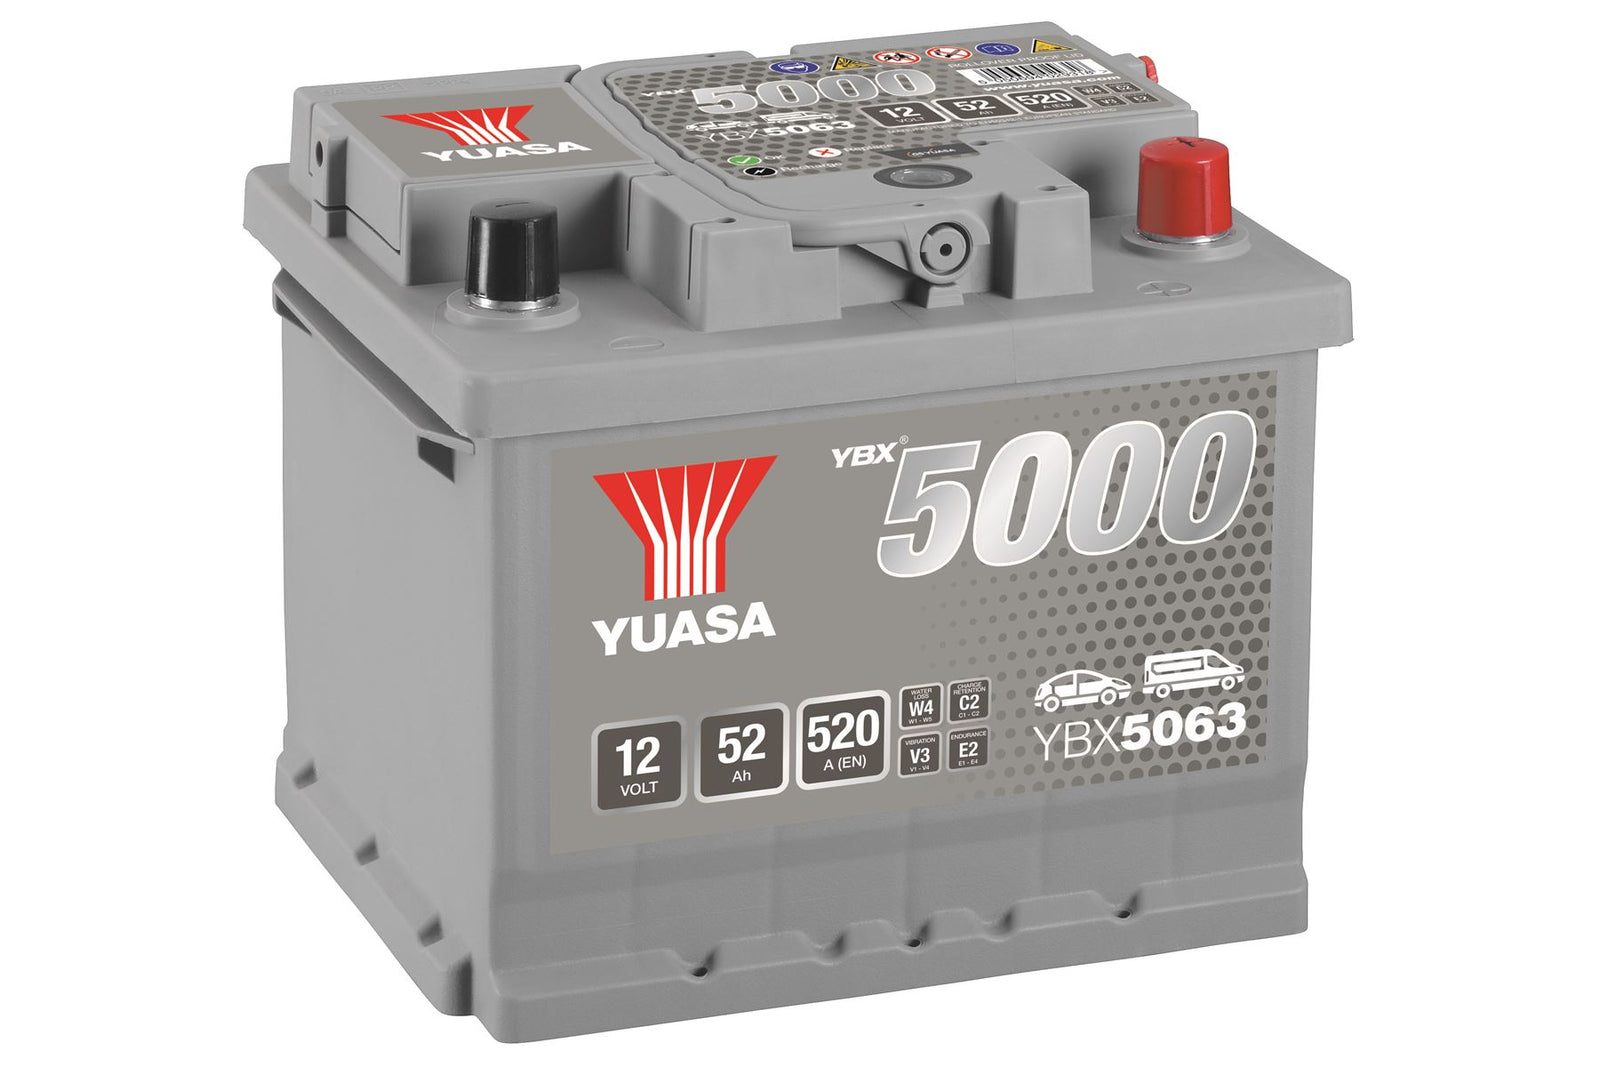 Yuasa YBX5063 Silver High Performance SMF Battery EU DIN